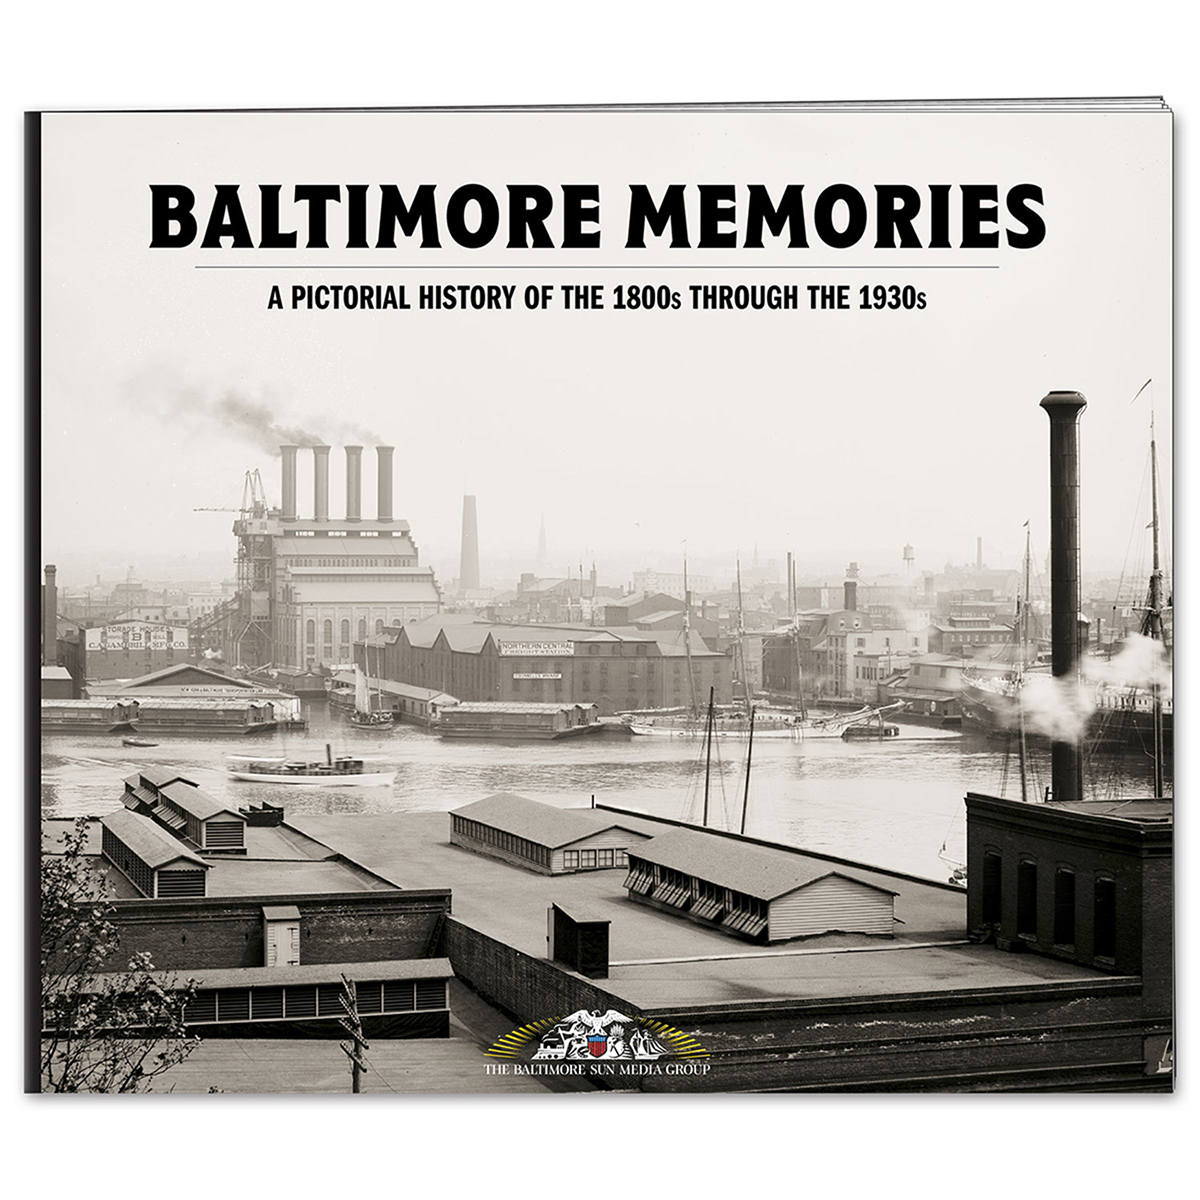 Baltimore Memories: A Pictorial History of the mid 1800s through the 1930s